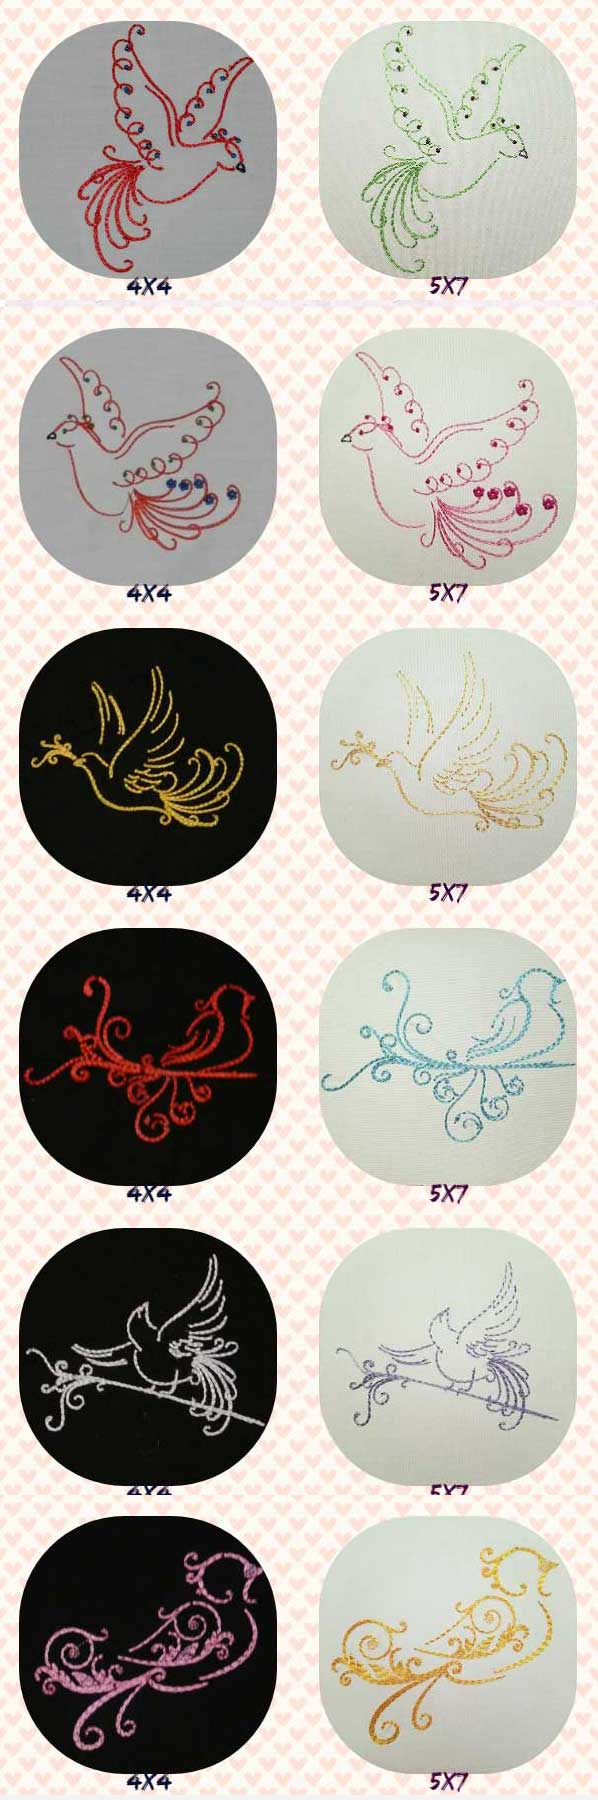 Swirly Doves Embroidery Machine Design Details